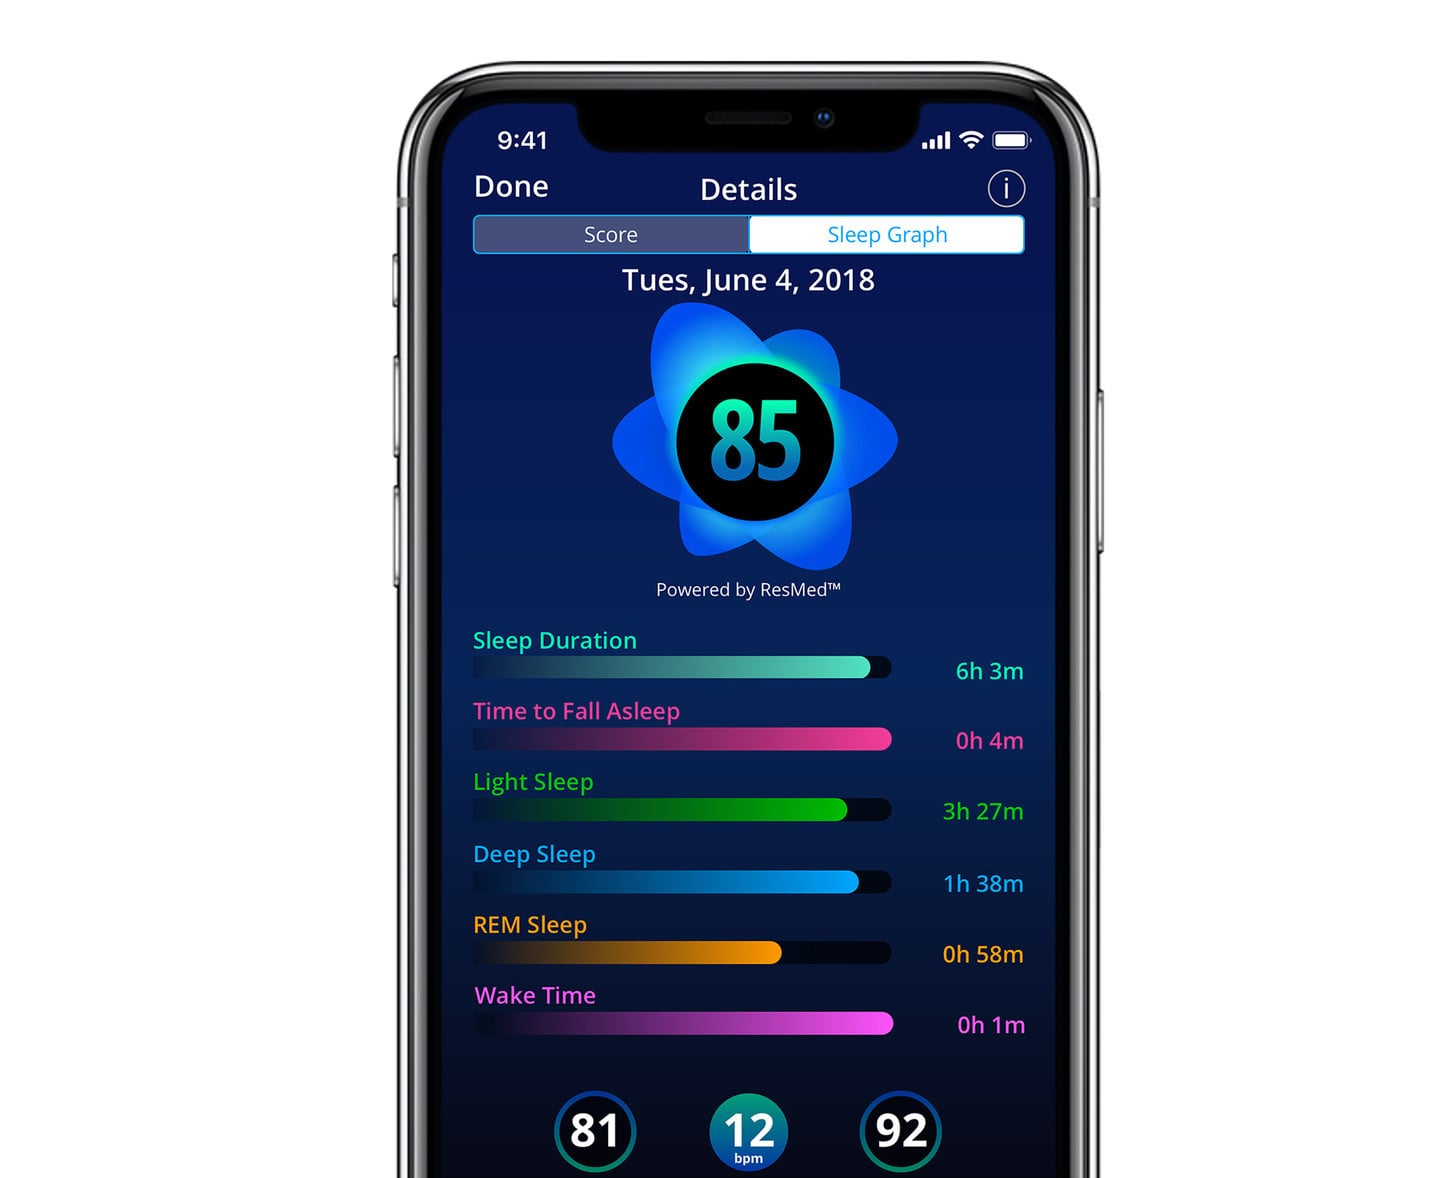 SleepScore Takes a Hands-Off Approach to Tracking Sleep